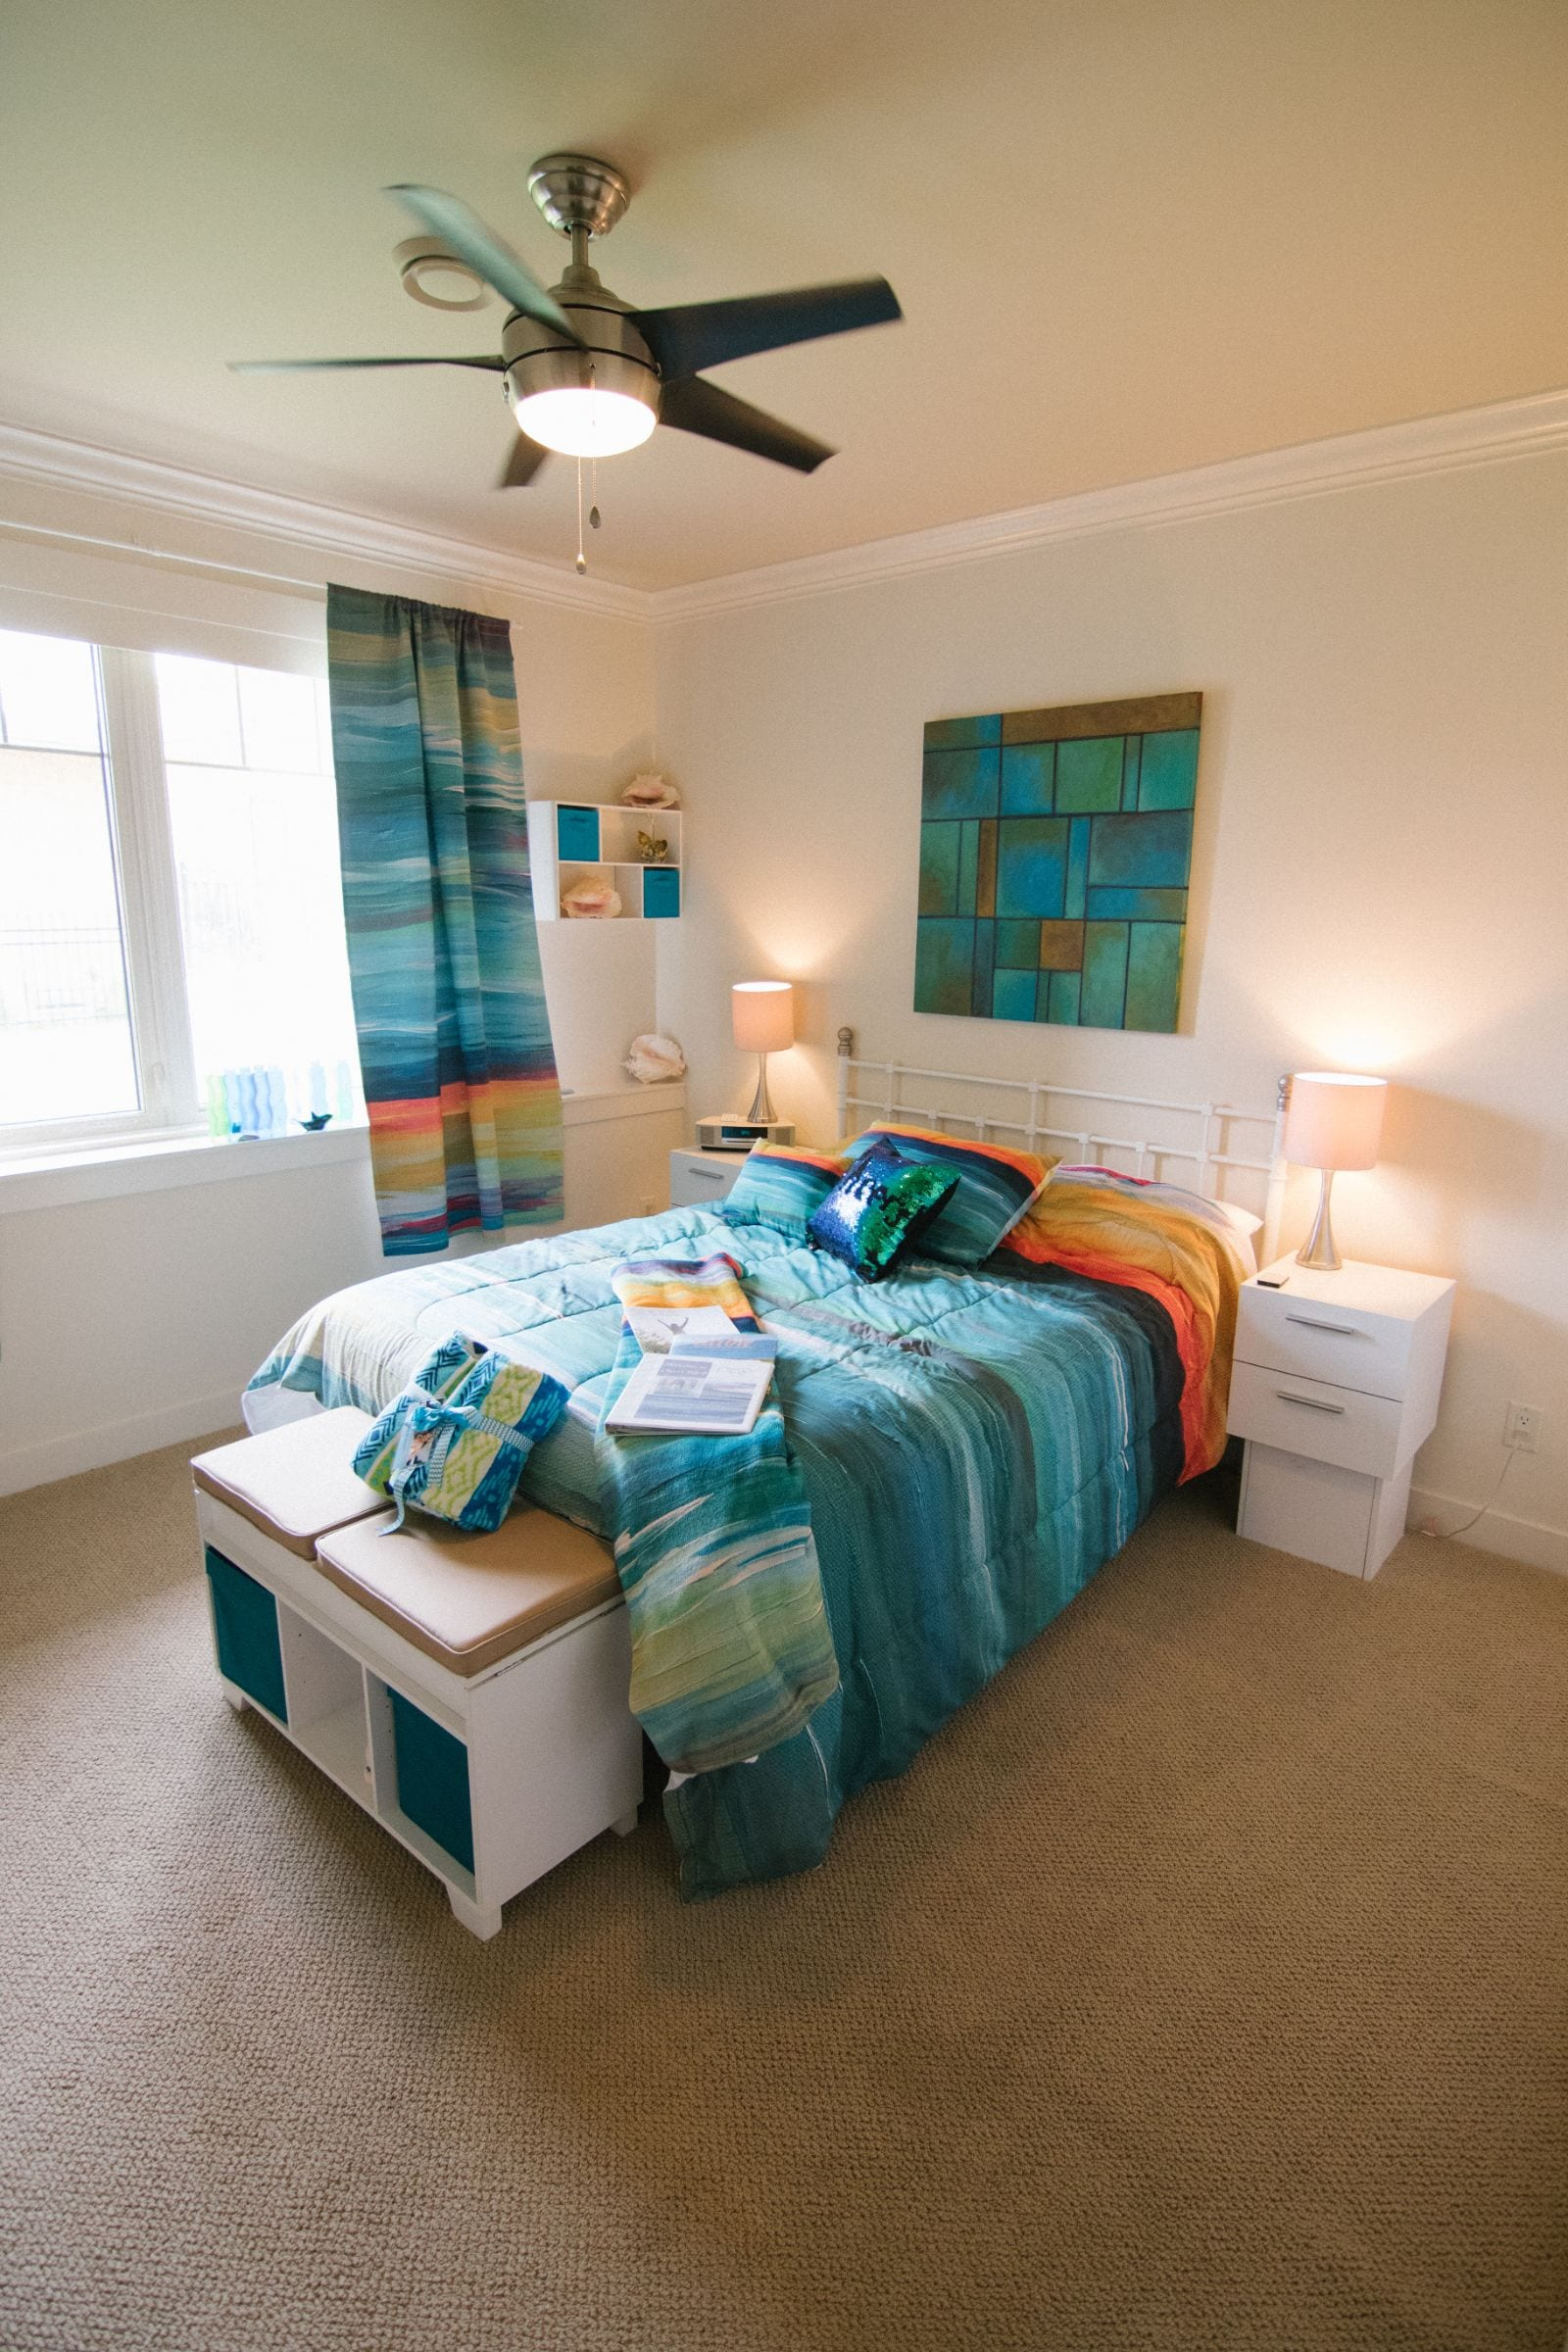 Bedroom with a window and ceiling fan